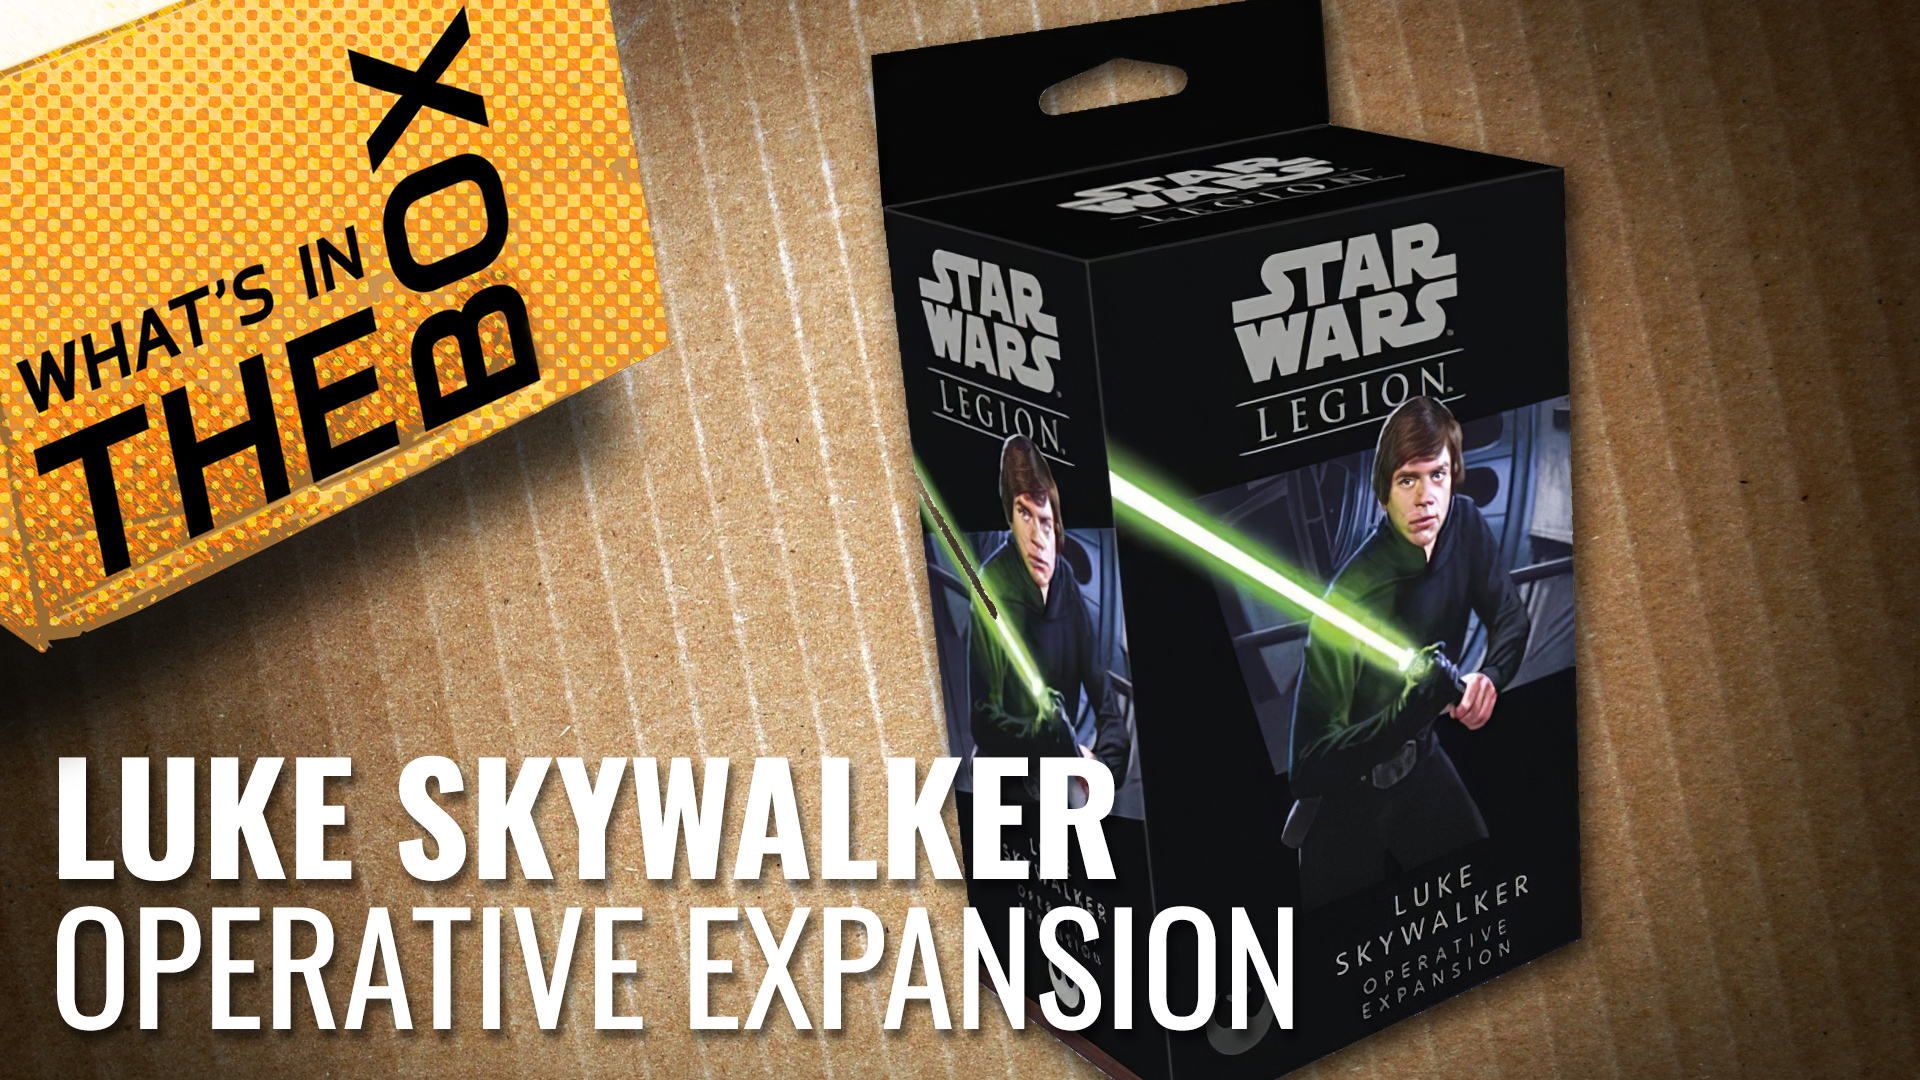 Unboxing: Star Wars Legion - Luke Skywalker Operative Expansion